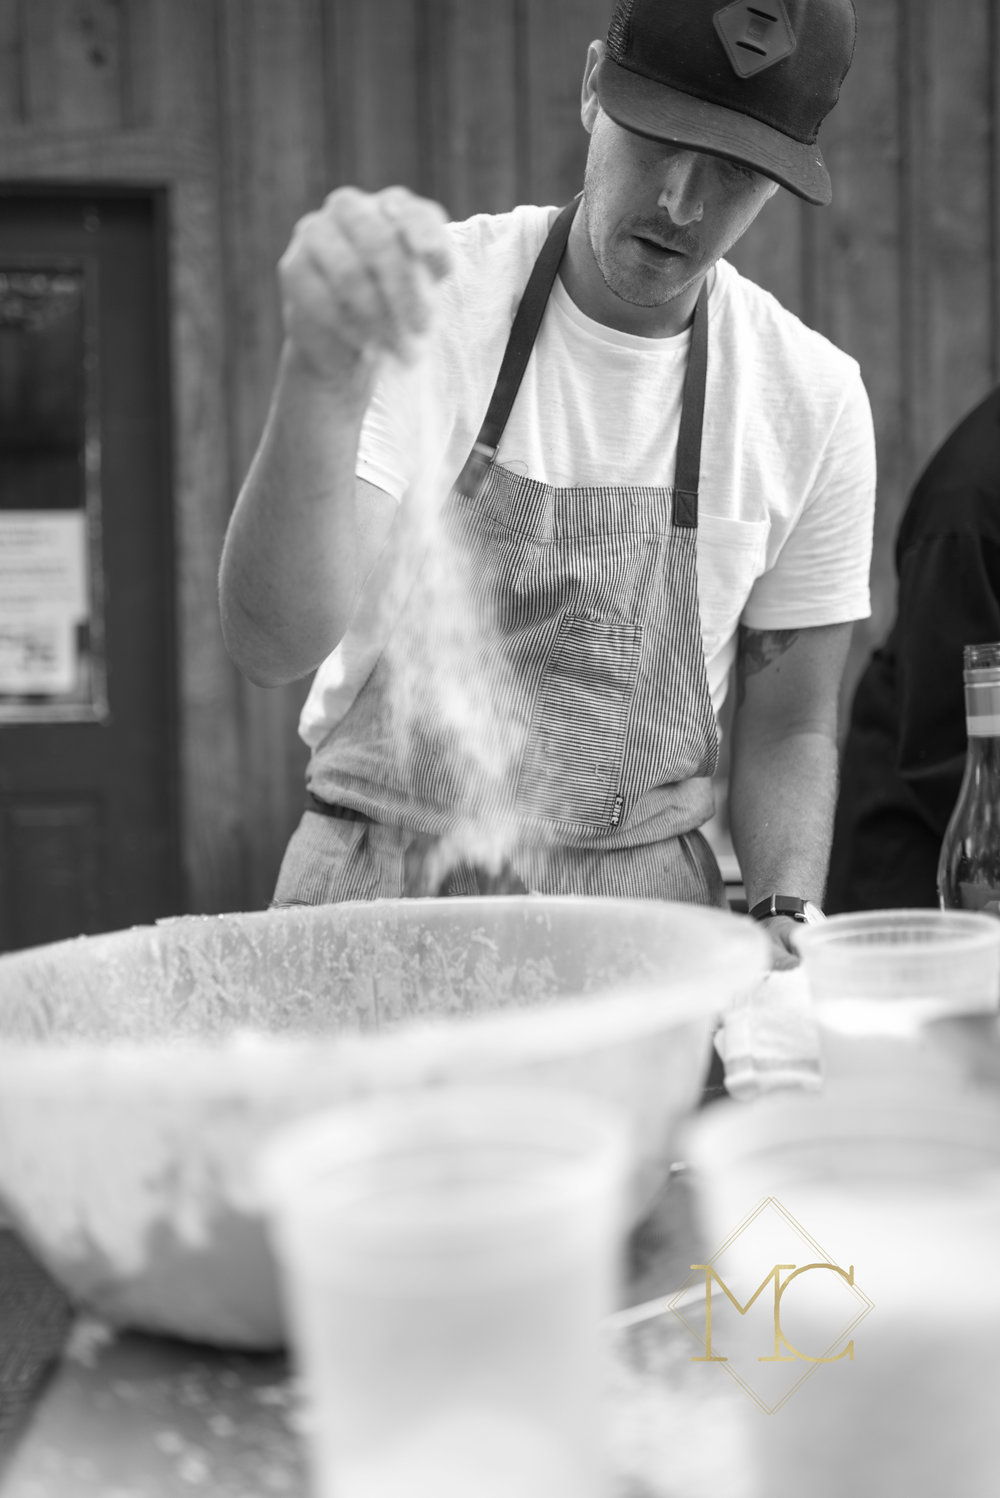 image from multiple sclerosis event of chef travis mcshane from adele's nashville preparing pasta